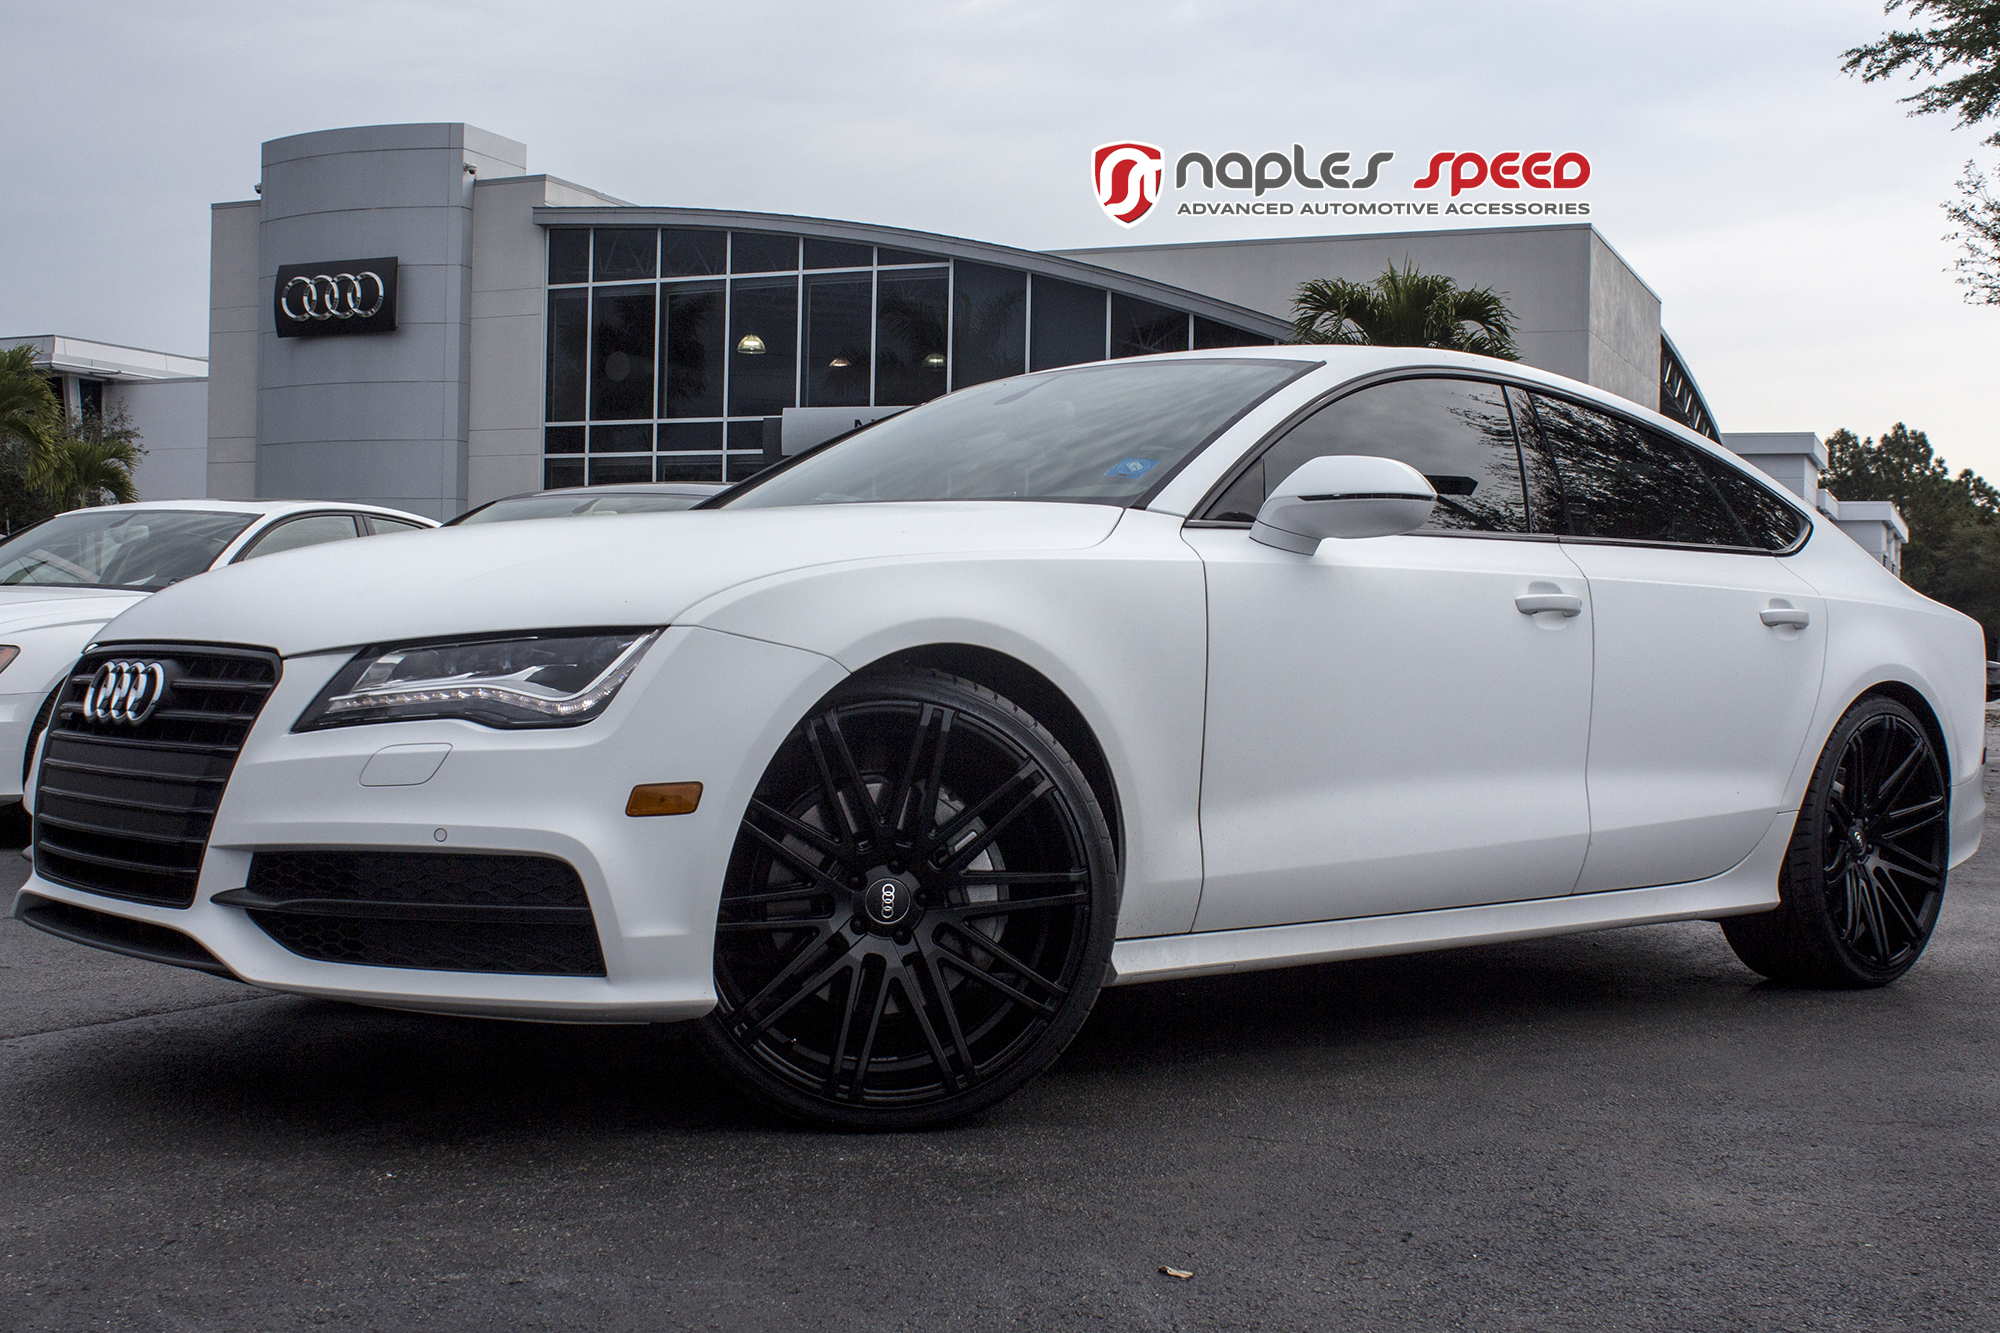 Audi Of Naples >> Wrapped Matte White Audi A7 on XO Milan Wheels – Advanced Automotive Accessories